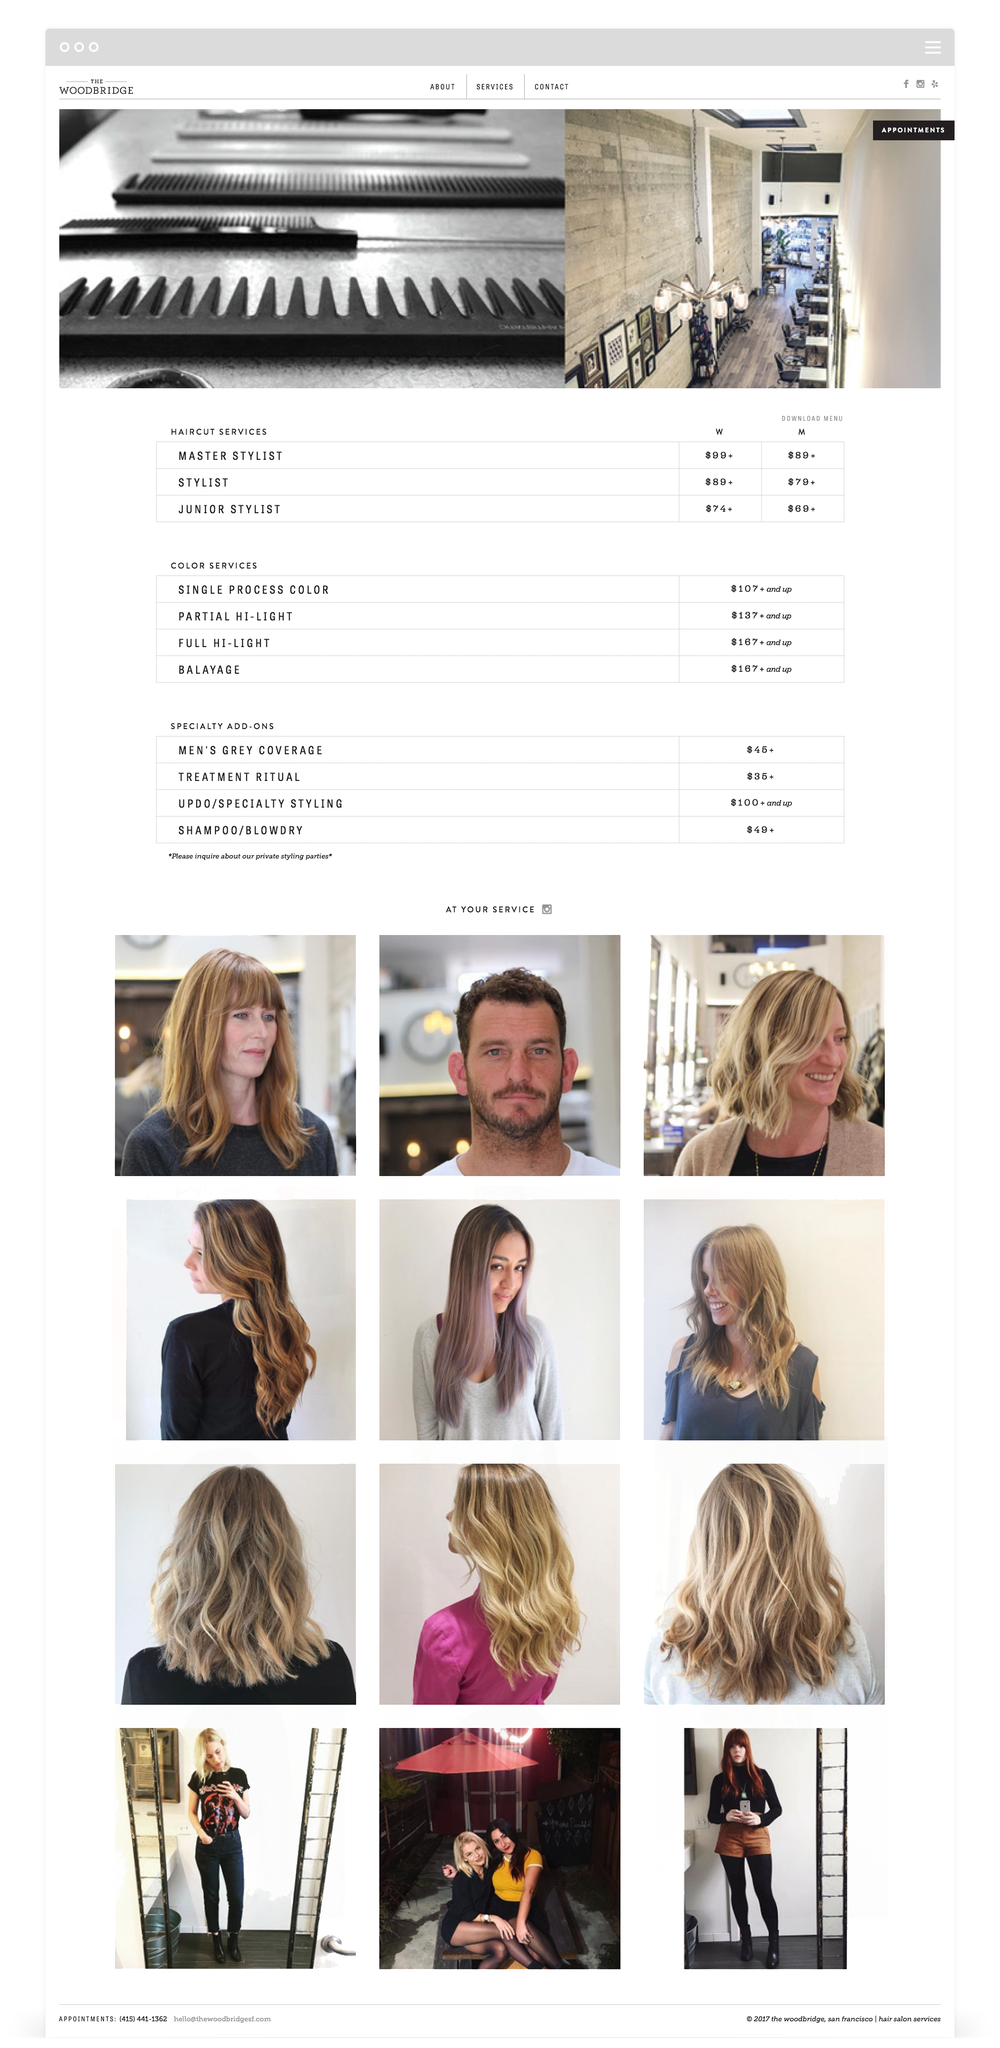 Website Development for The Woodbridge Salon by Second + West